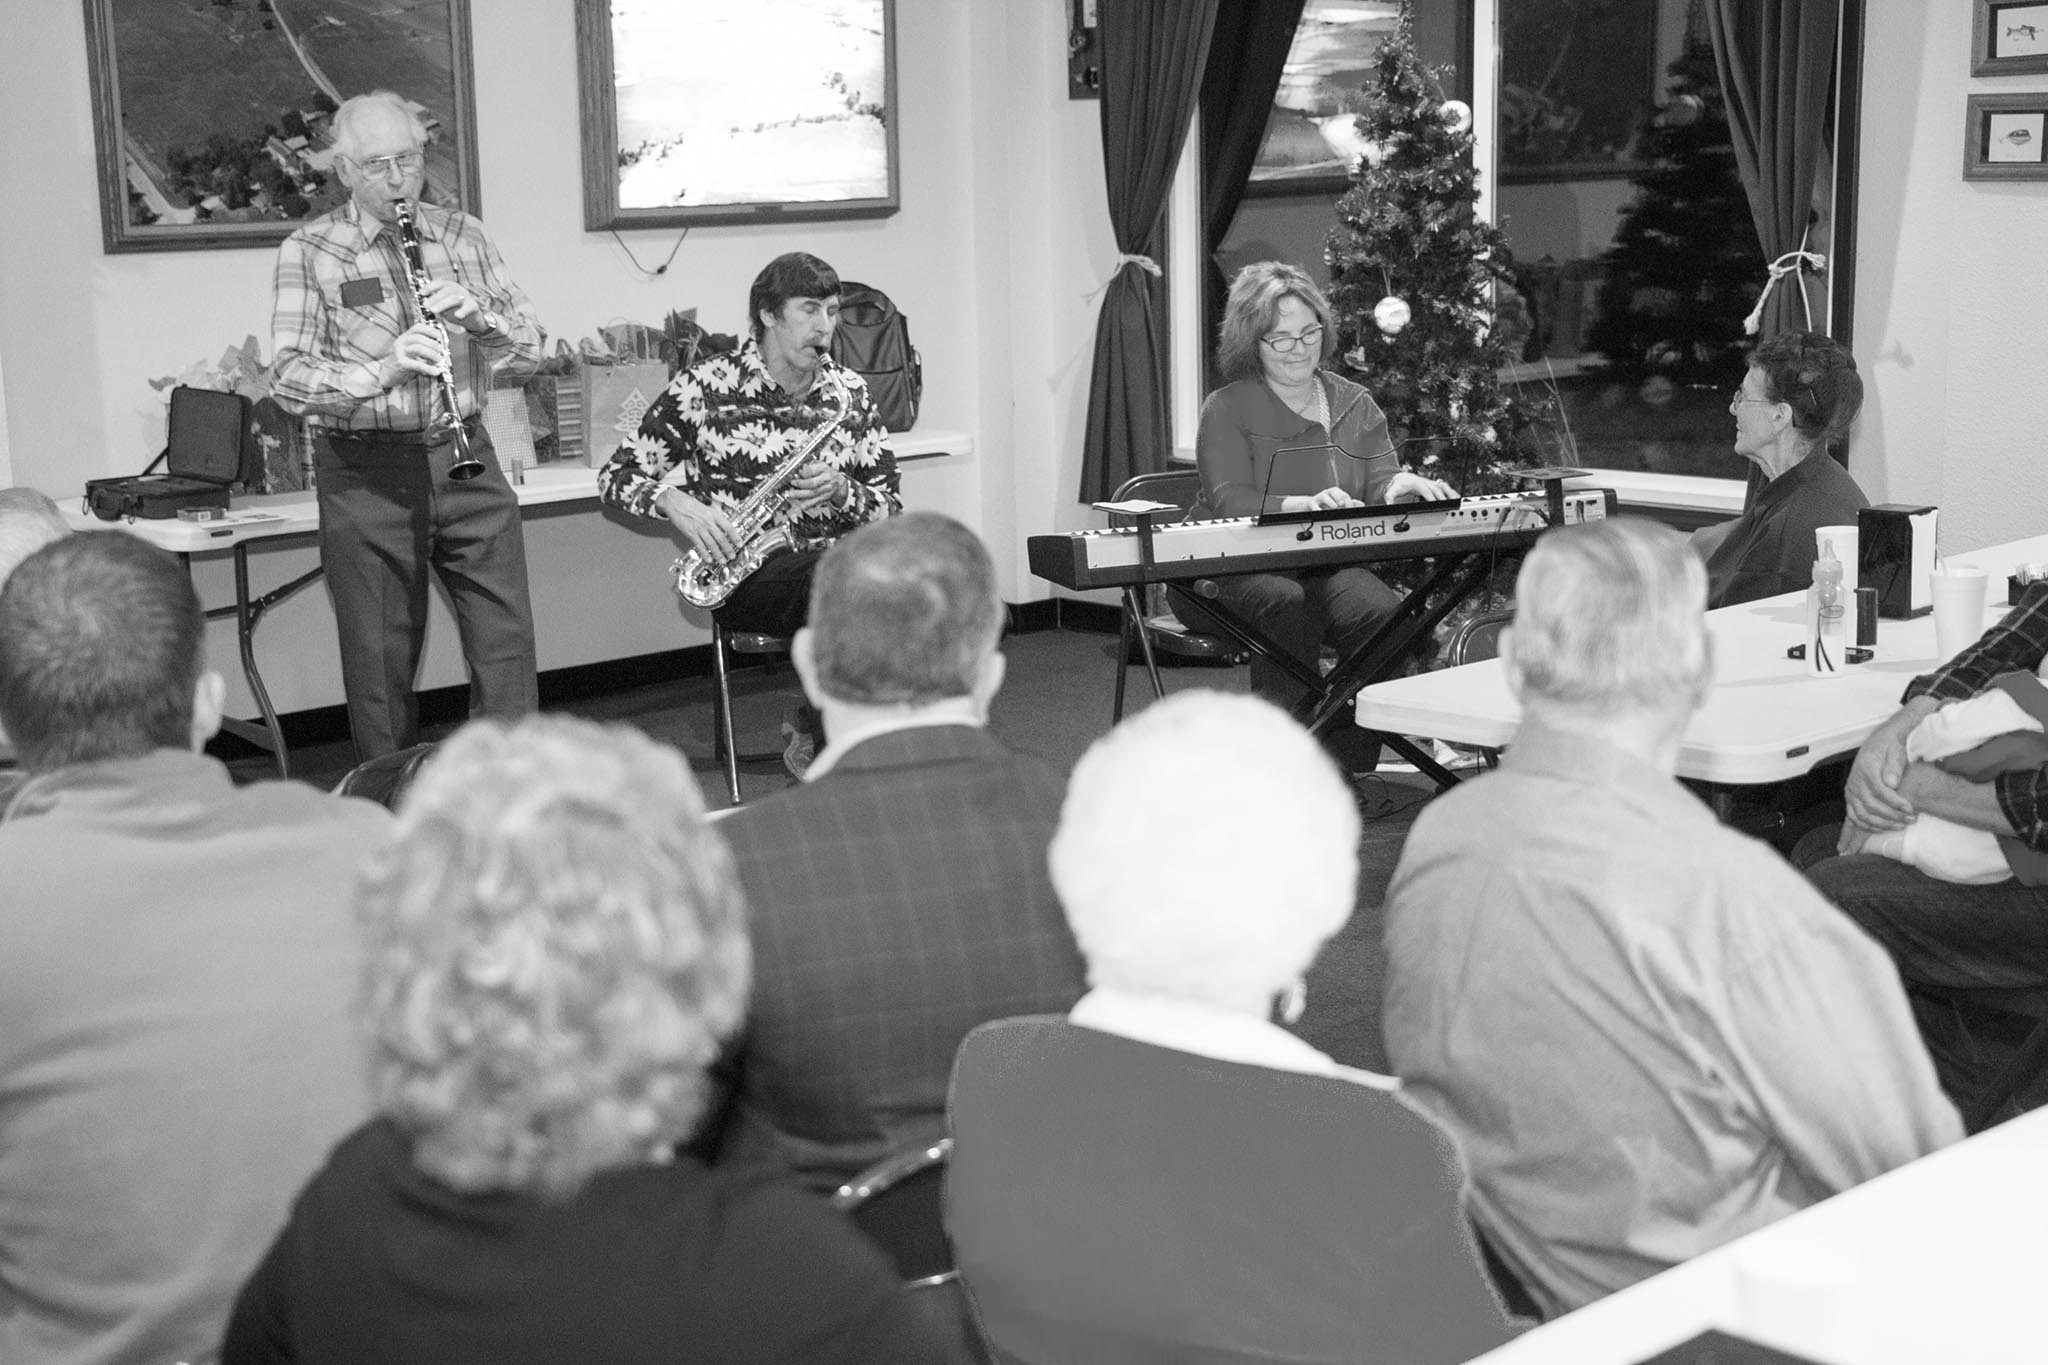 Here, Rogers County Farm Bureau members, including County President E.J. Snider on the clarinet entertain members during the county's annual Christmas party in 2014, which included a meal and a gift exchange.